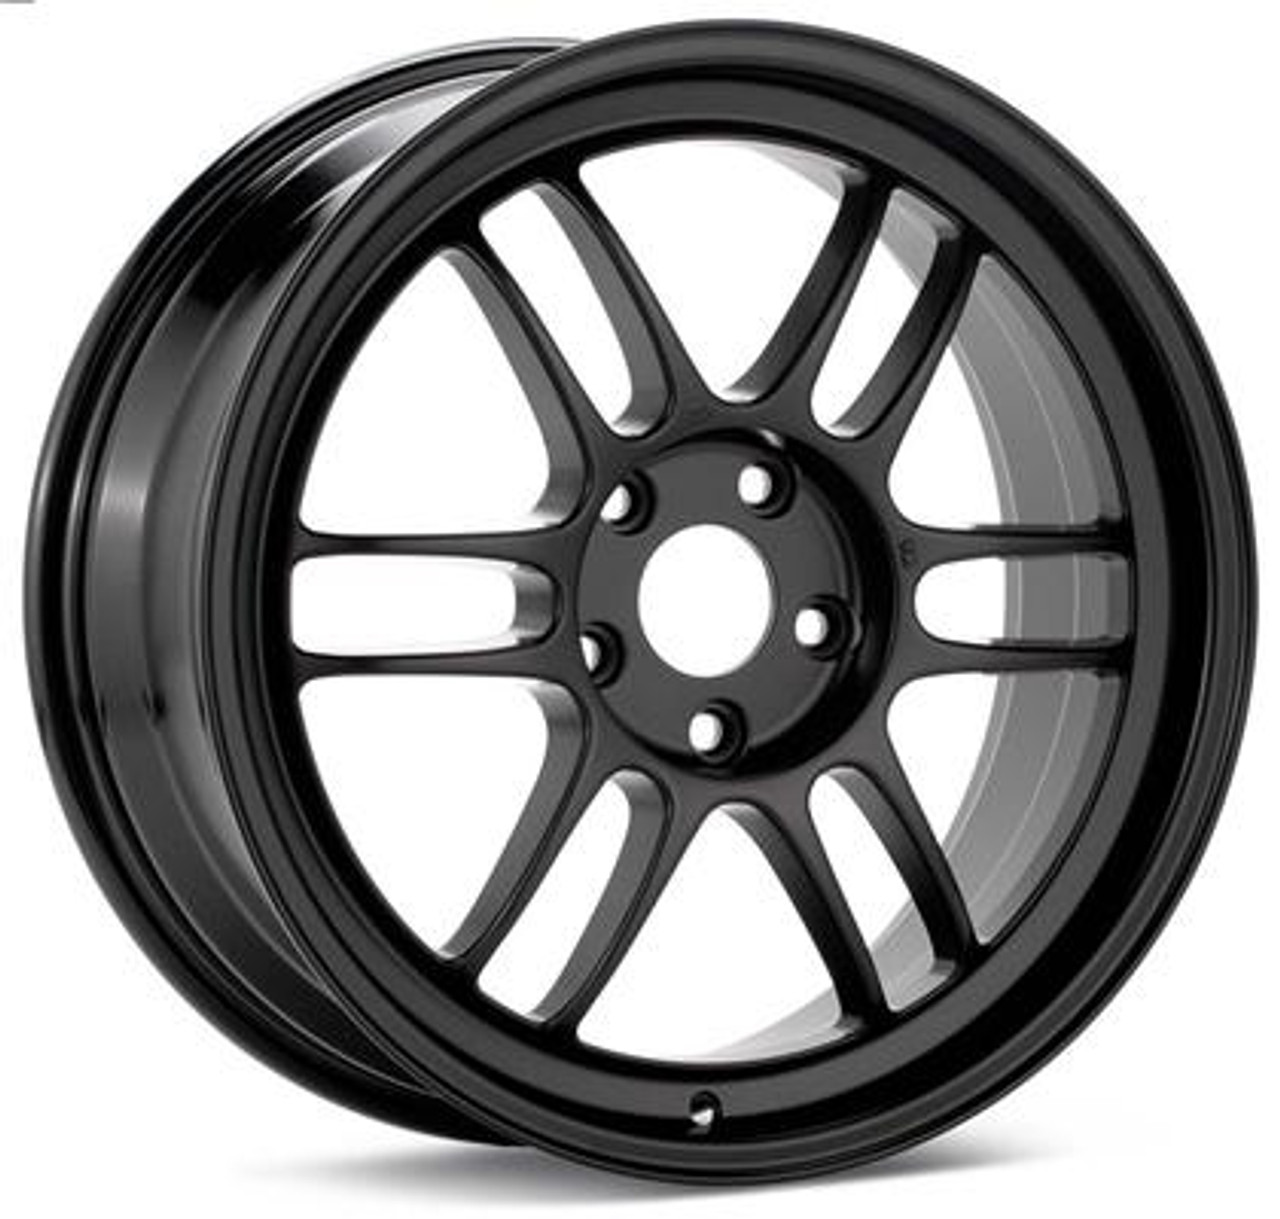 Enkei - RPF1 Wheels (Matte Black)